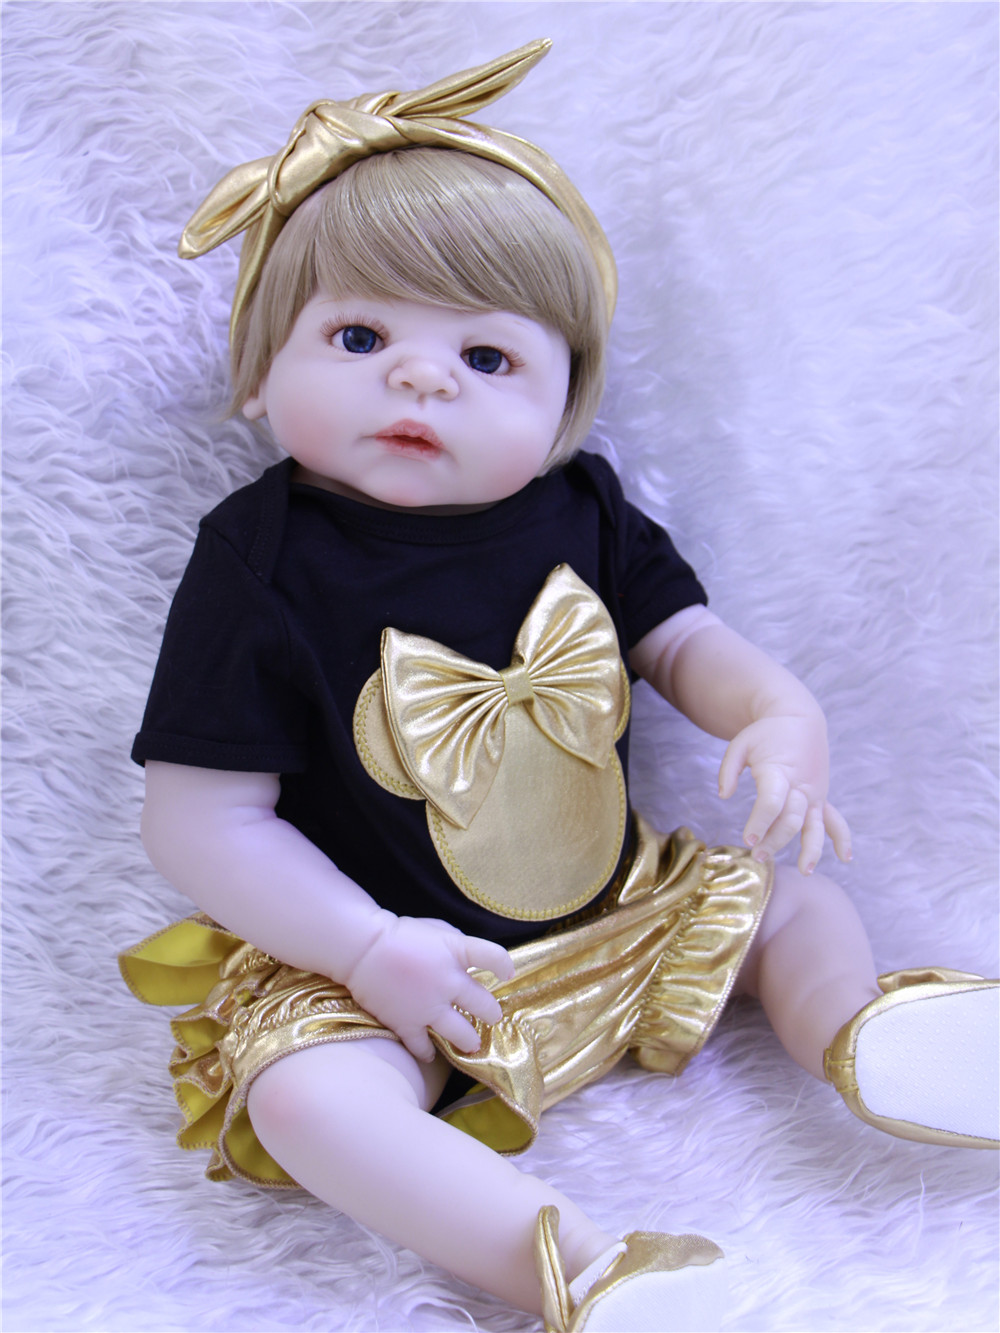 NPK Bebes reborn menina 22inch Blonde hair full silicone reborn baby dolls toys for children gift can enter water oyuncak bebekNPK Bebes reborn menina 22inch Blonde hair full silicone reborn baby dolls toys for children gift can enter water oyuncak bebek